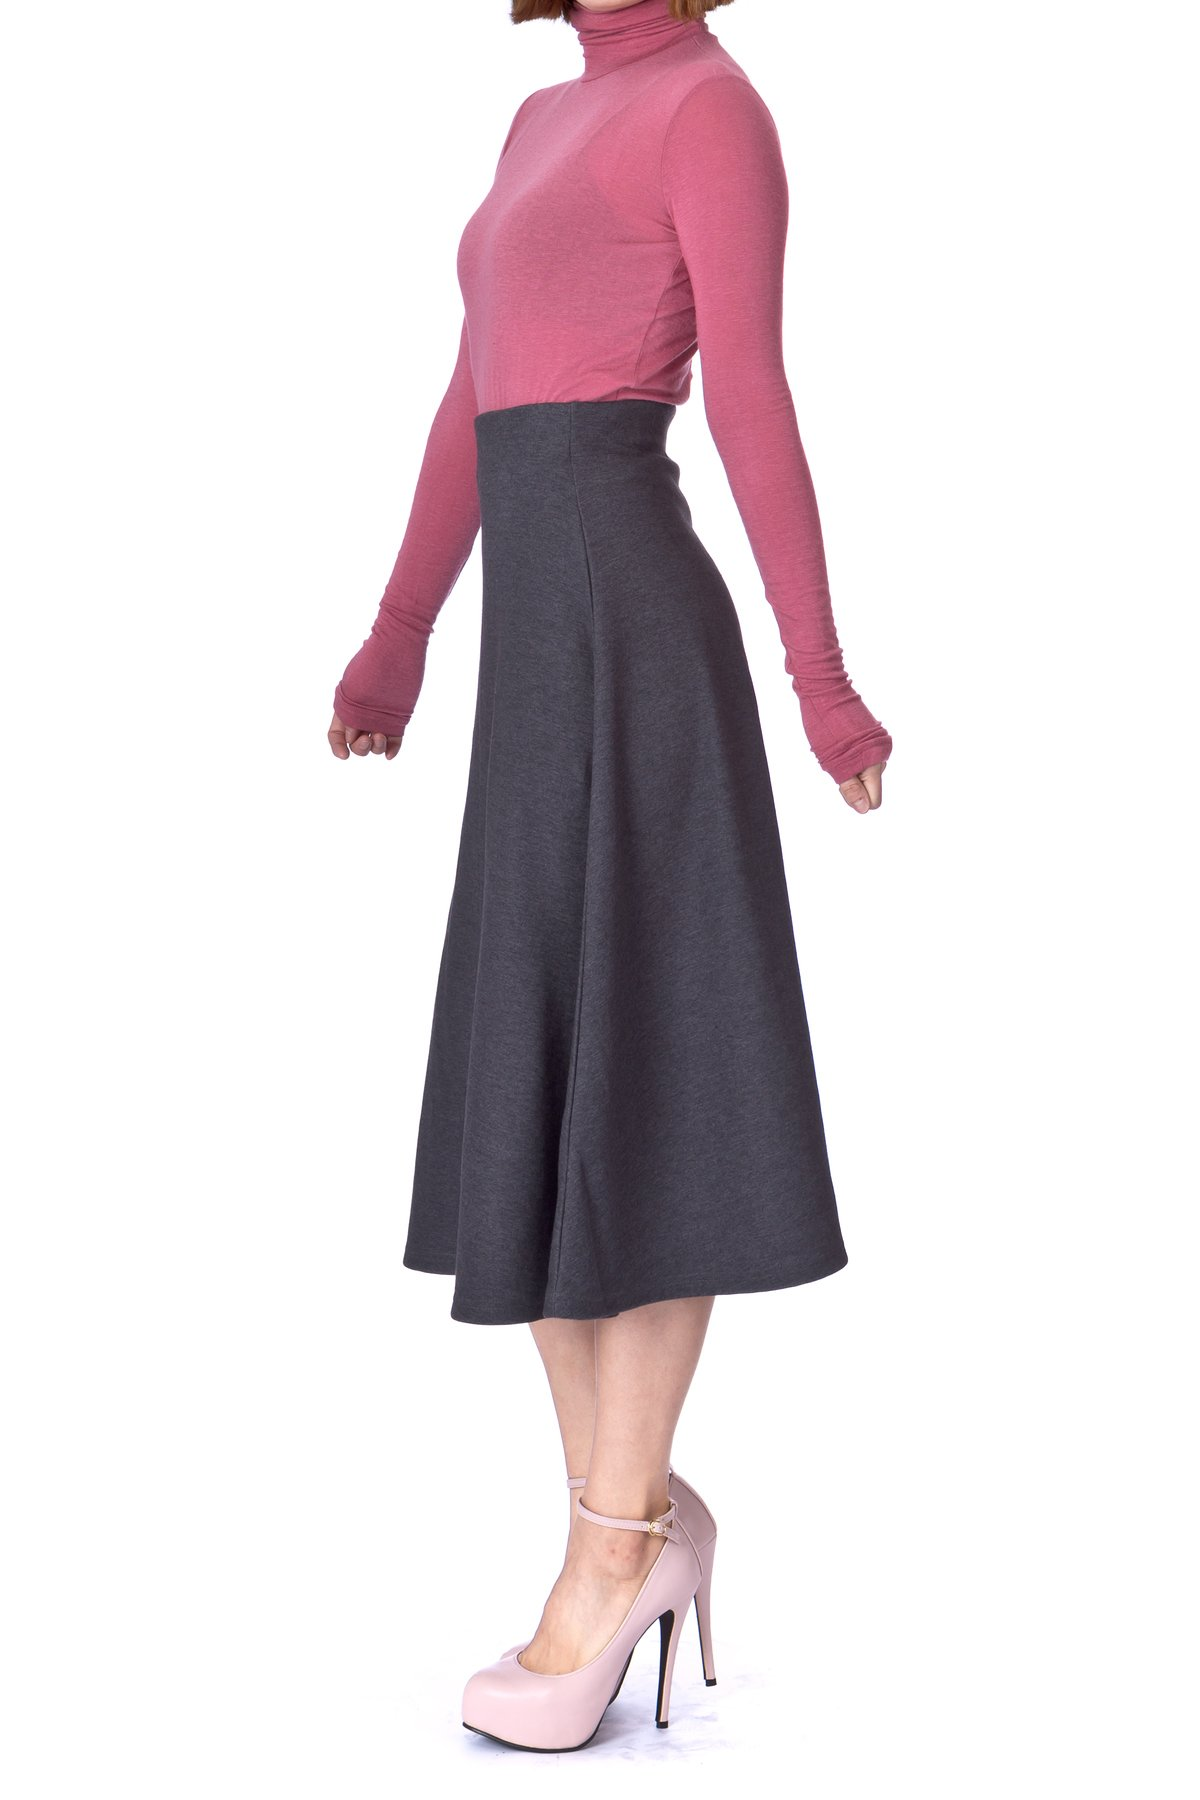 Elastic Waist A-line Flared Long Skirt (S, Charcoal)